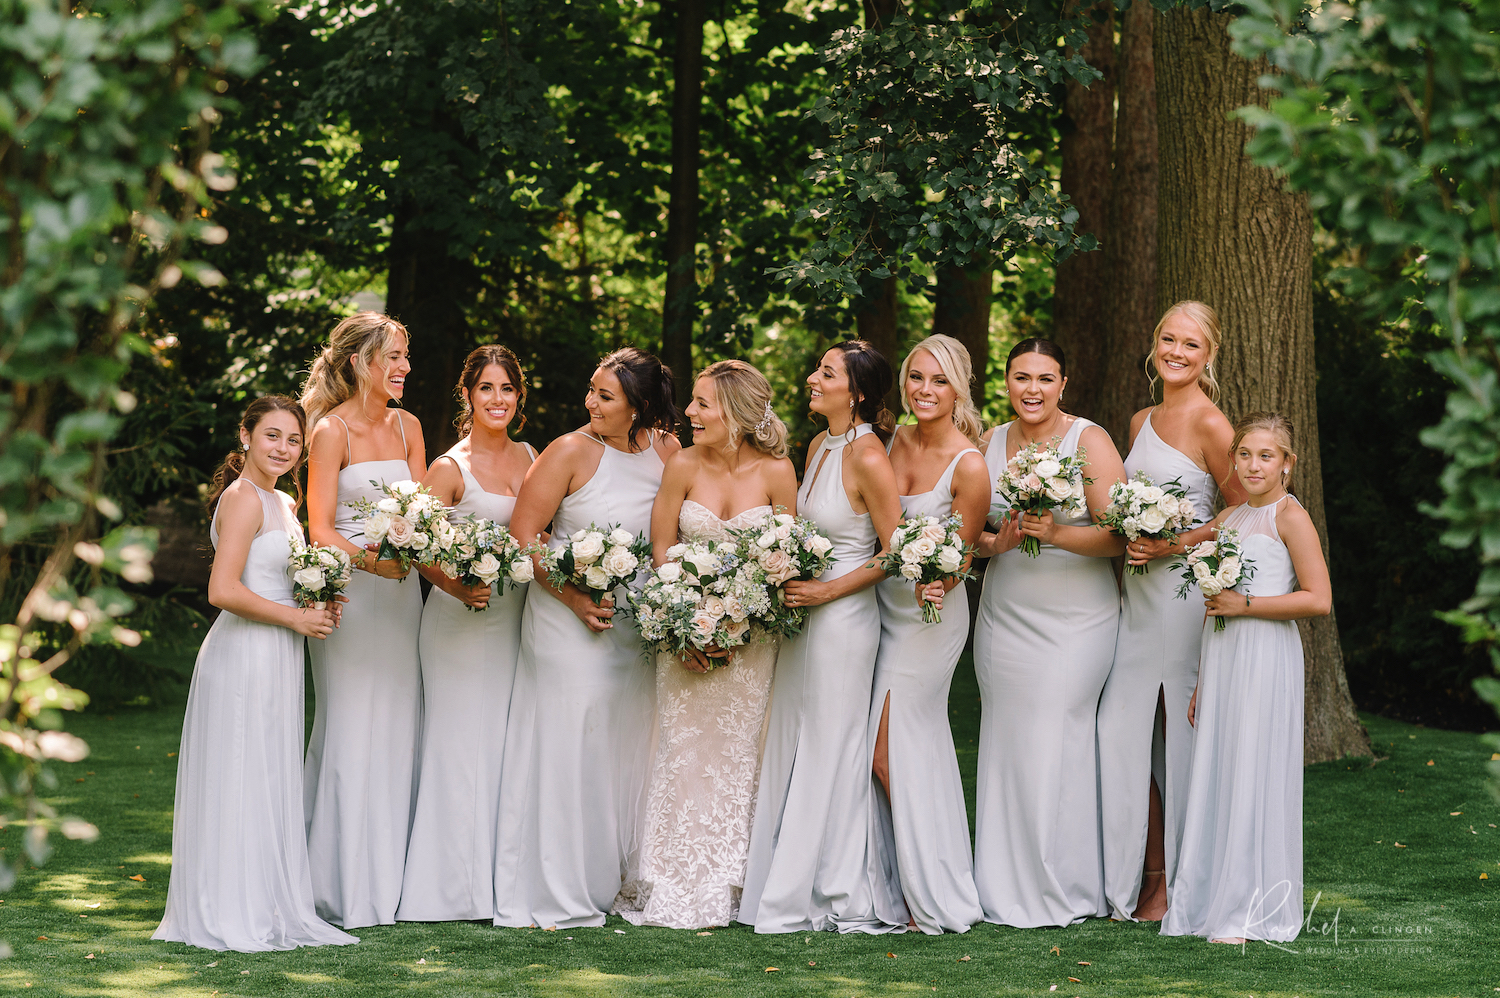 bridesmaids wedding ideas